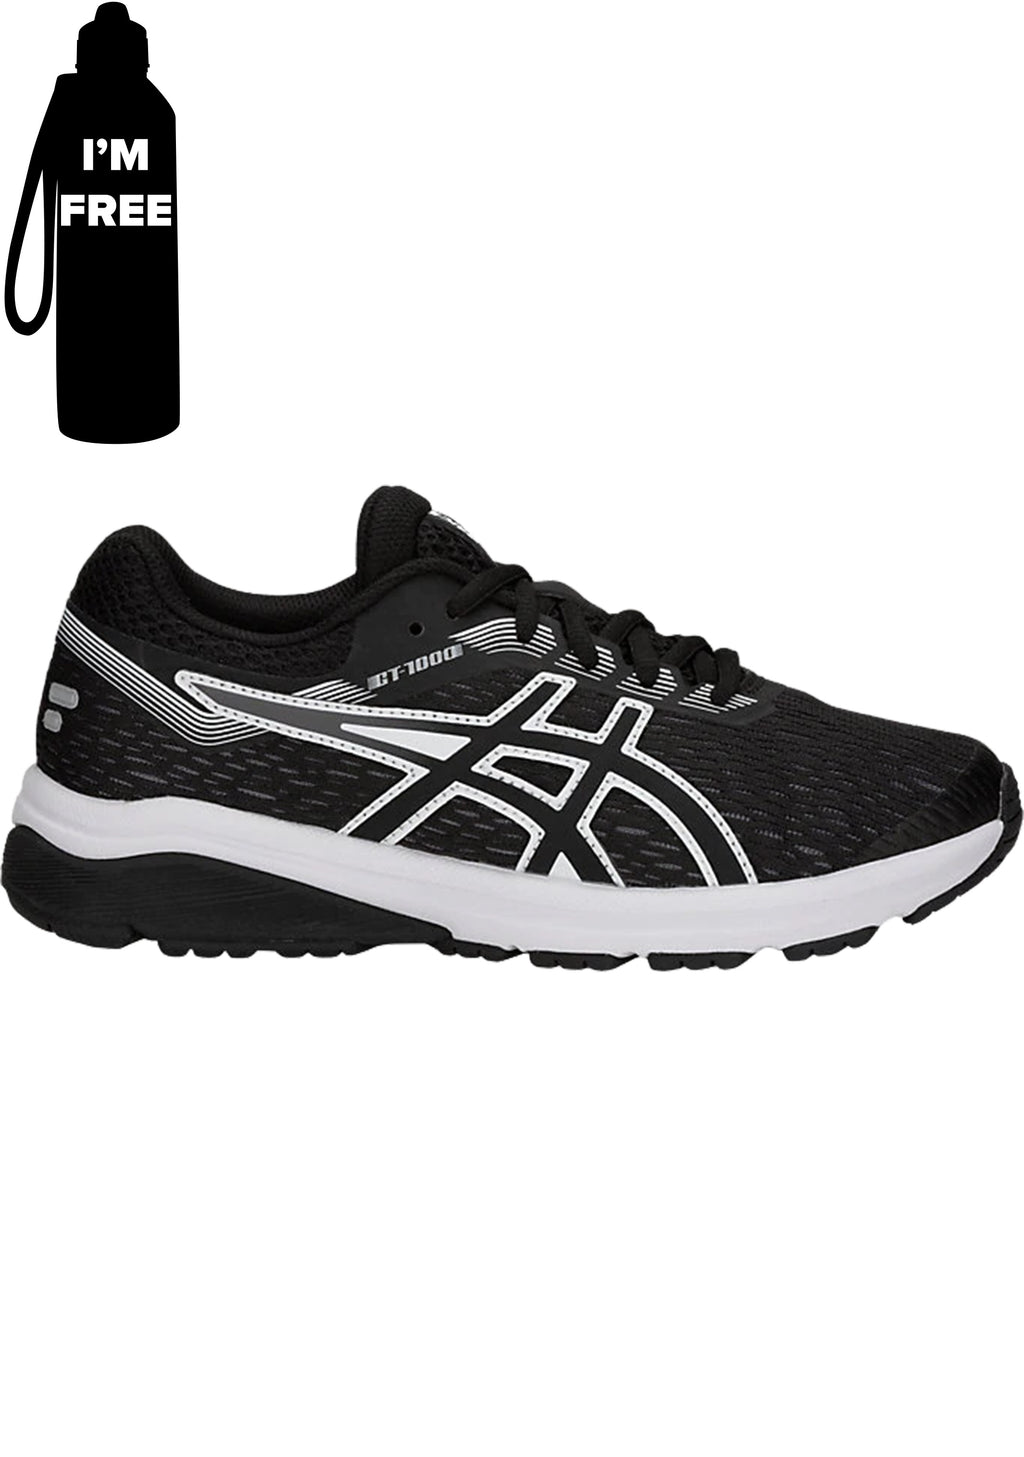 ASICS GT 1000 7 GS JUNIOR  WITH FREE DRINK BOTTLE<br> 1014A005 002